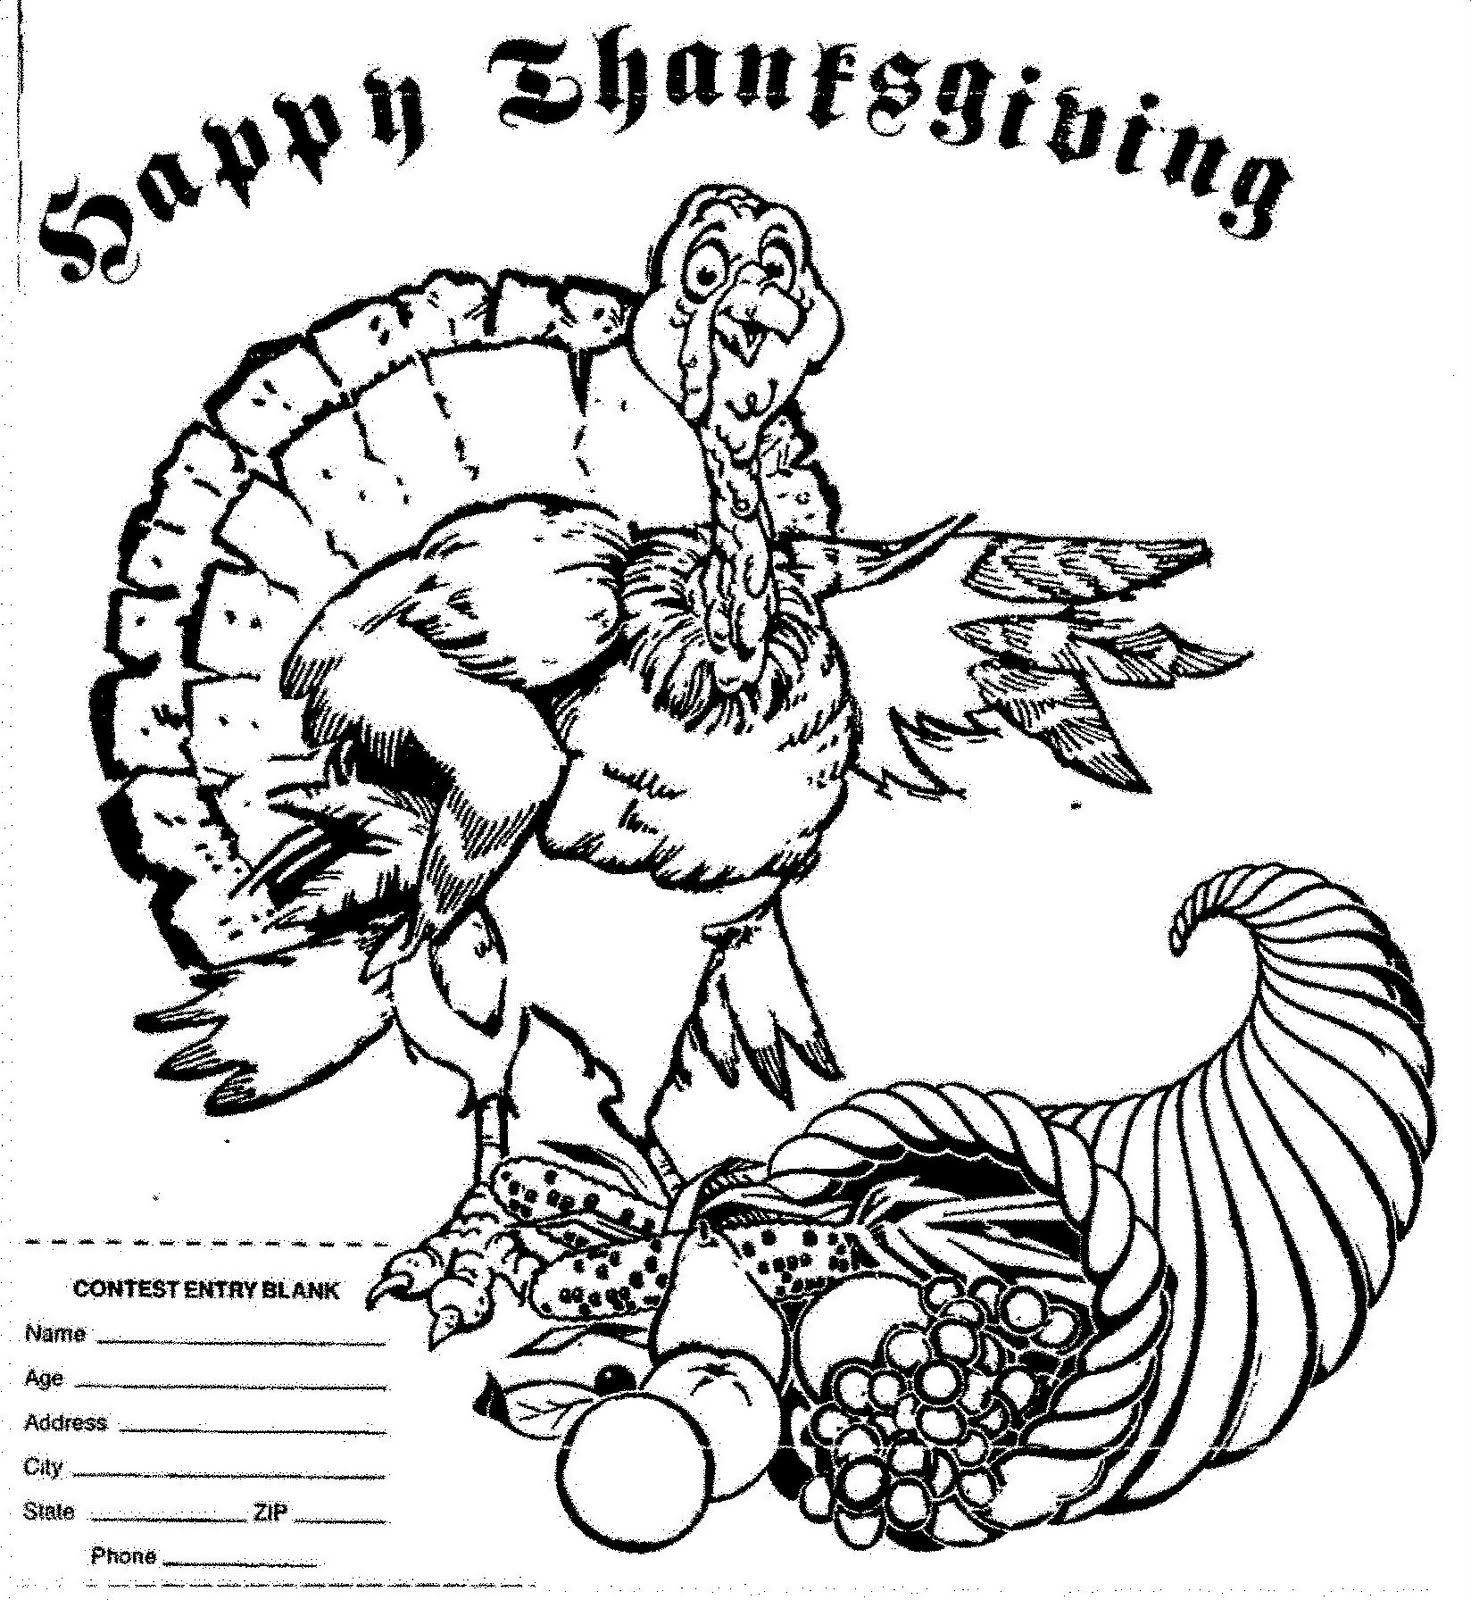 mostly paper dolls happy thanksgiving coloring contest